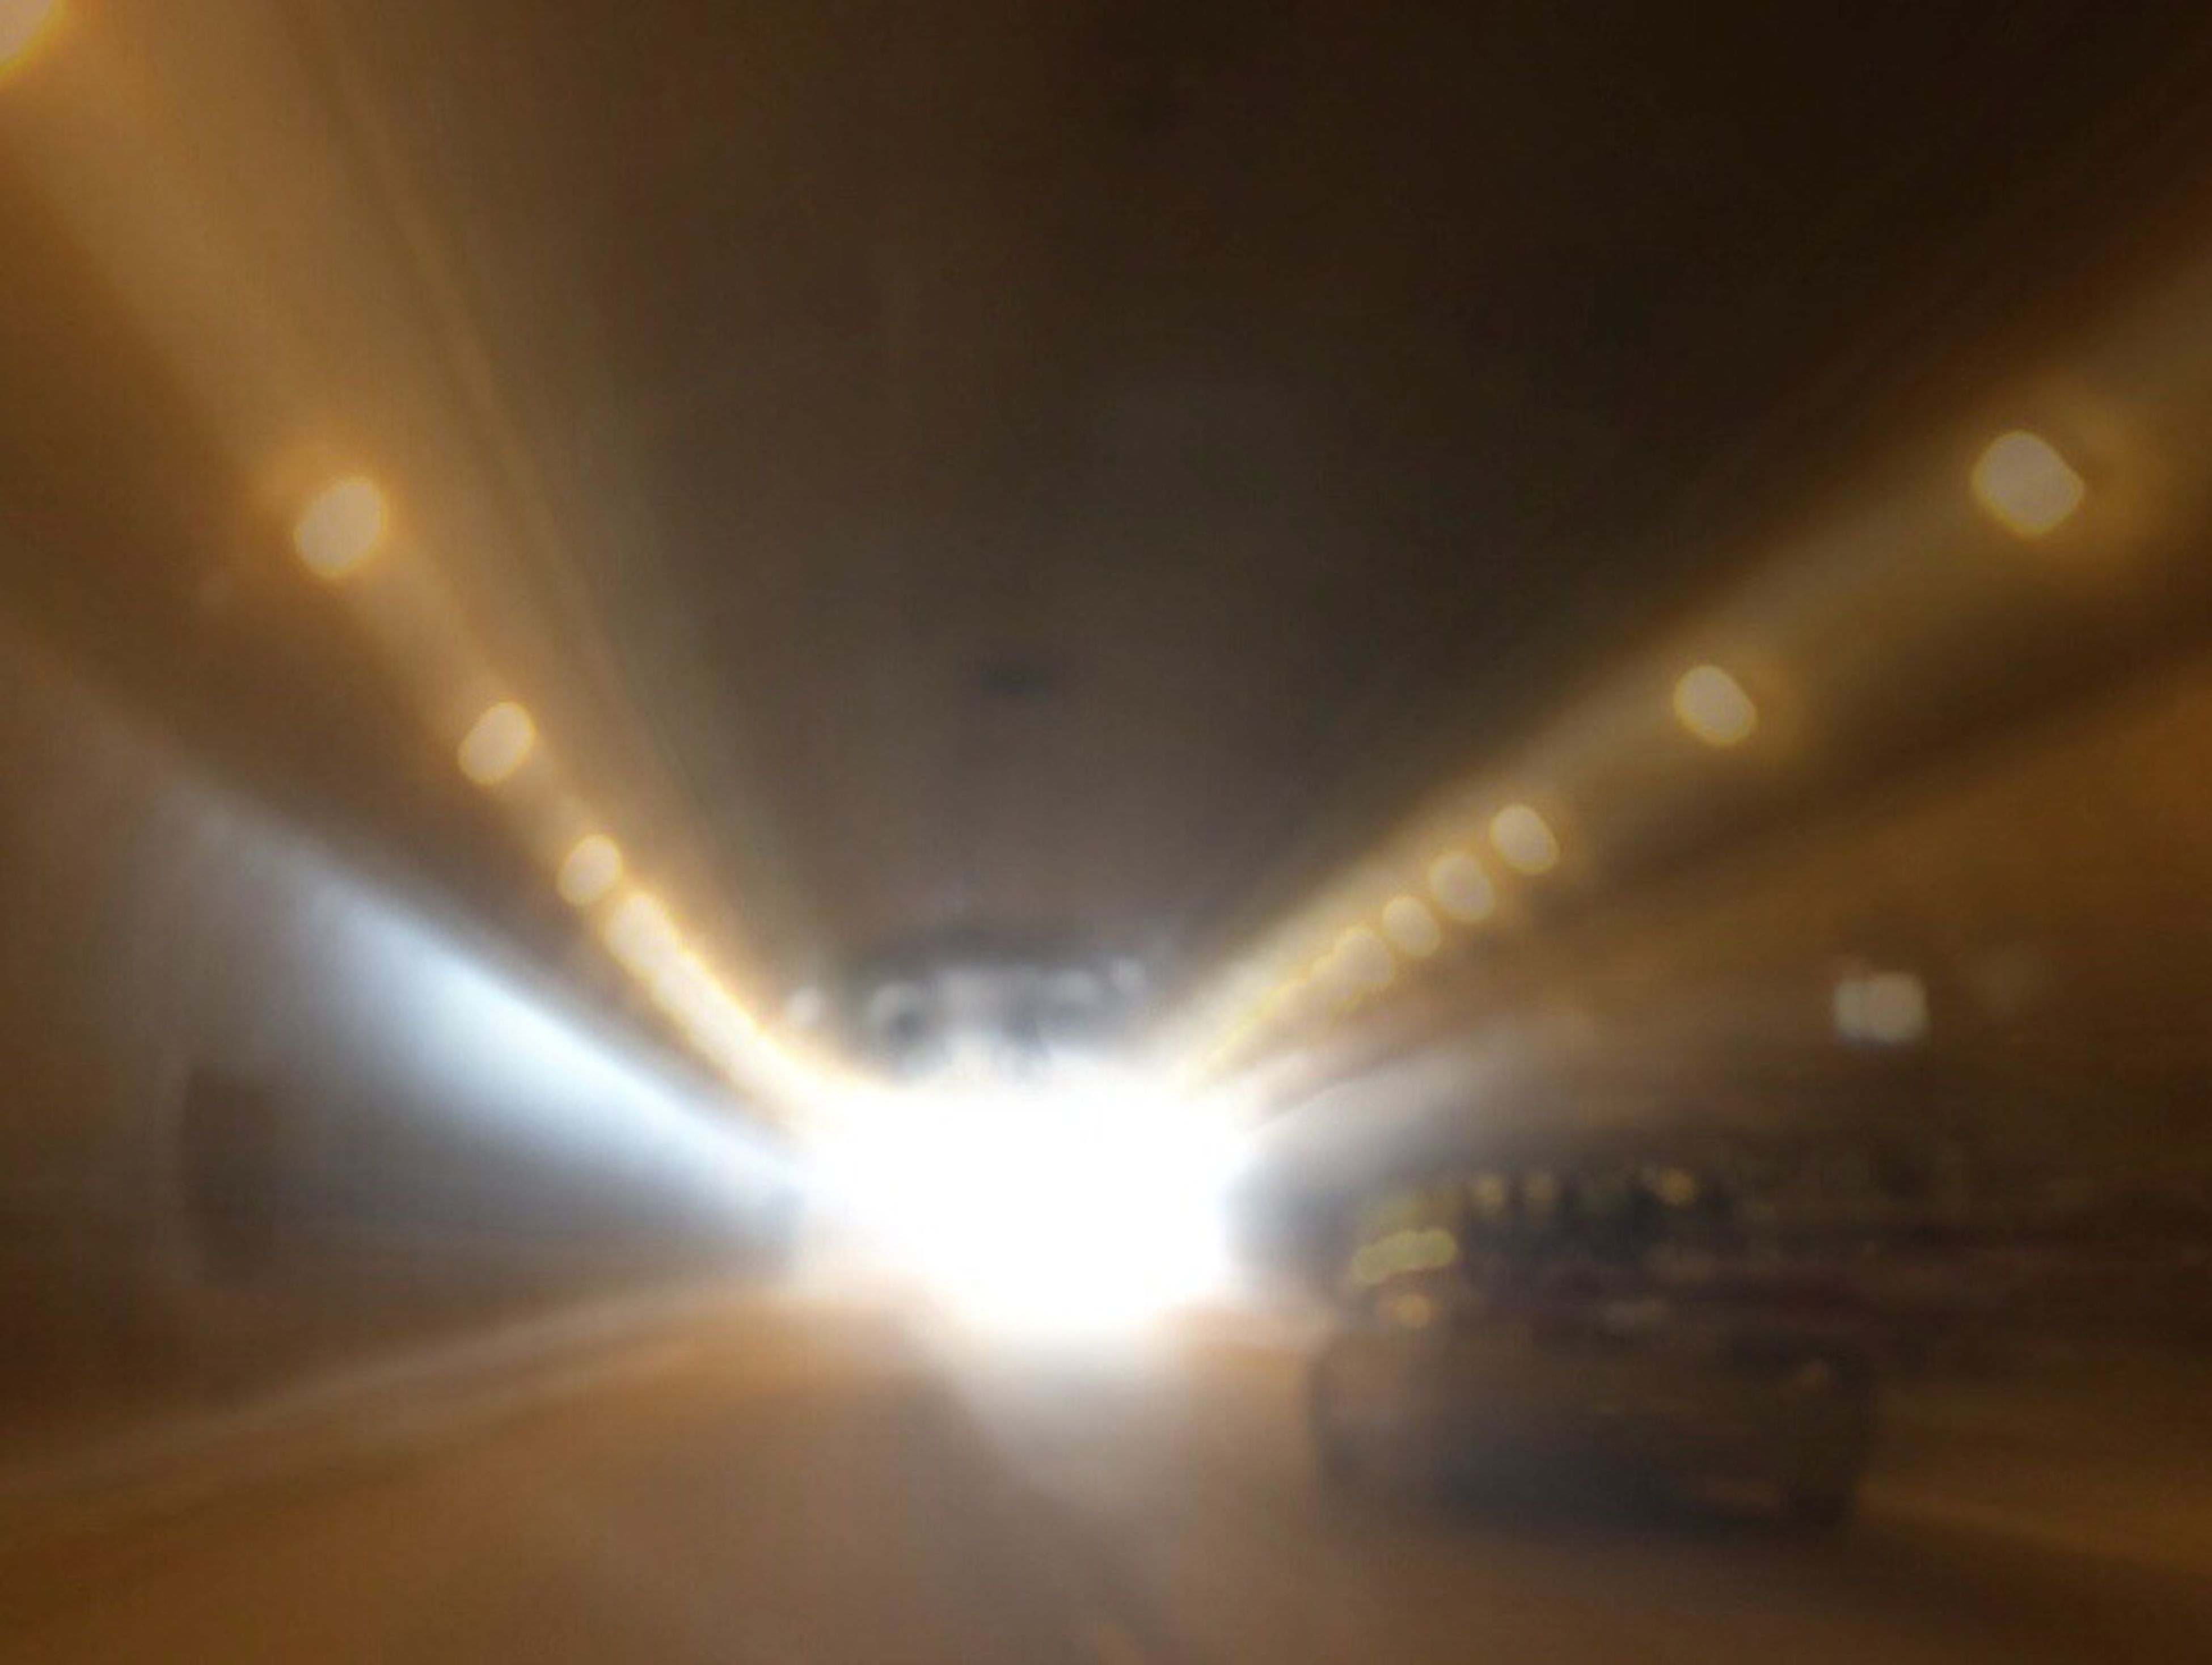 illuminated, transportation, the way forward, indoors, architecture, built structure, lighting equipment, diminishing perspective, night, tunnel, light - natural phenomenon, lens flare, vanishing point, mode of transport, ceiling, road, no people, glowing, electric light, incidental people